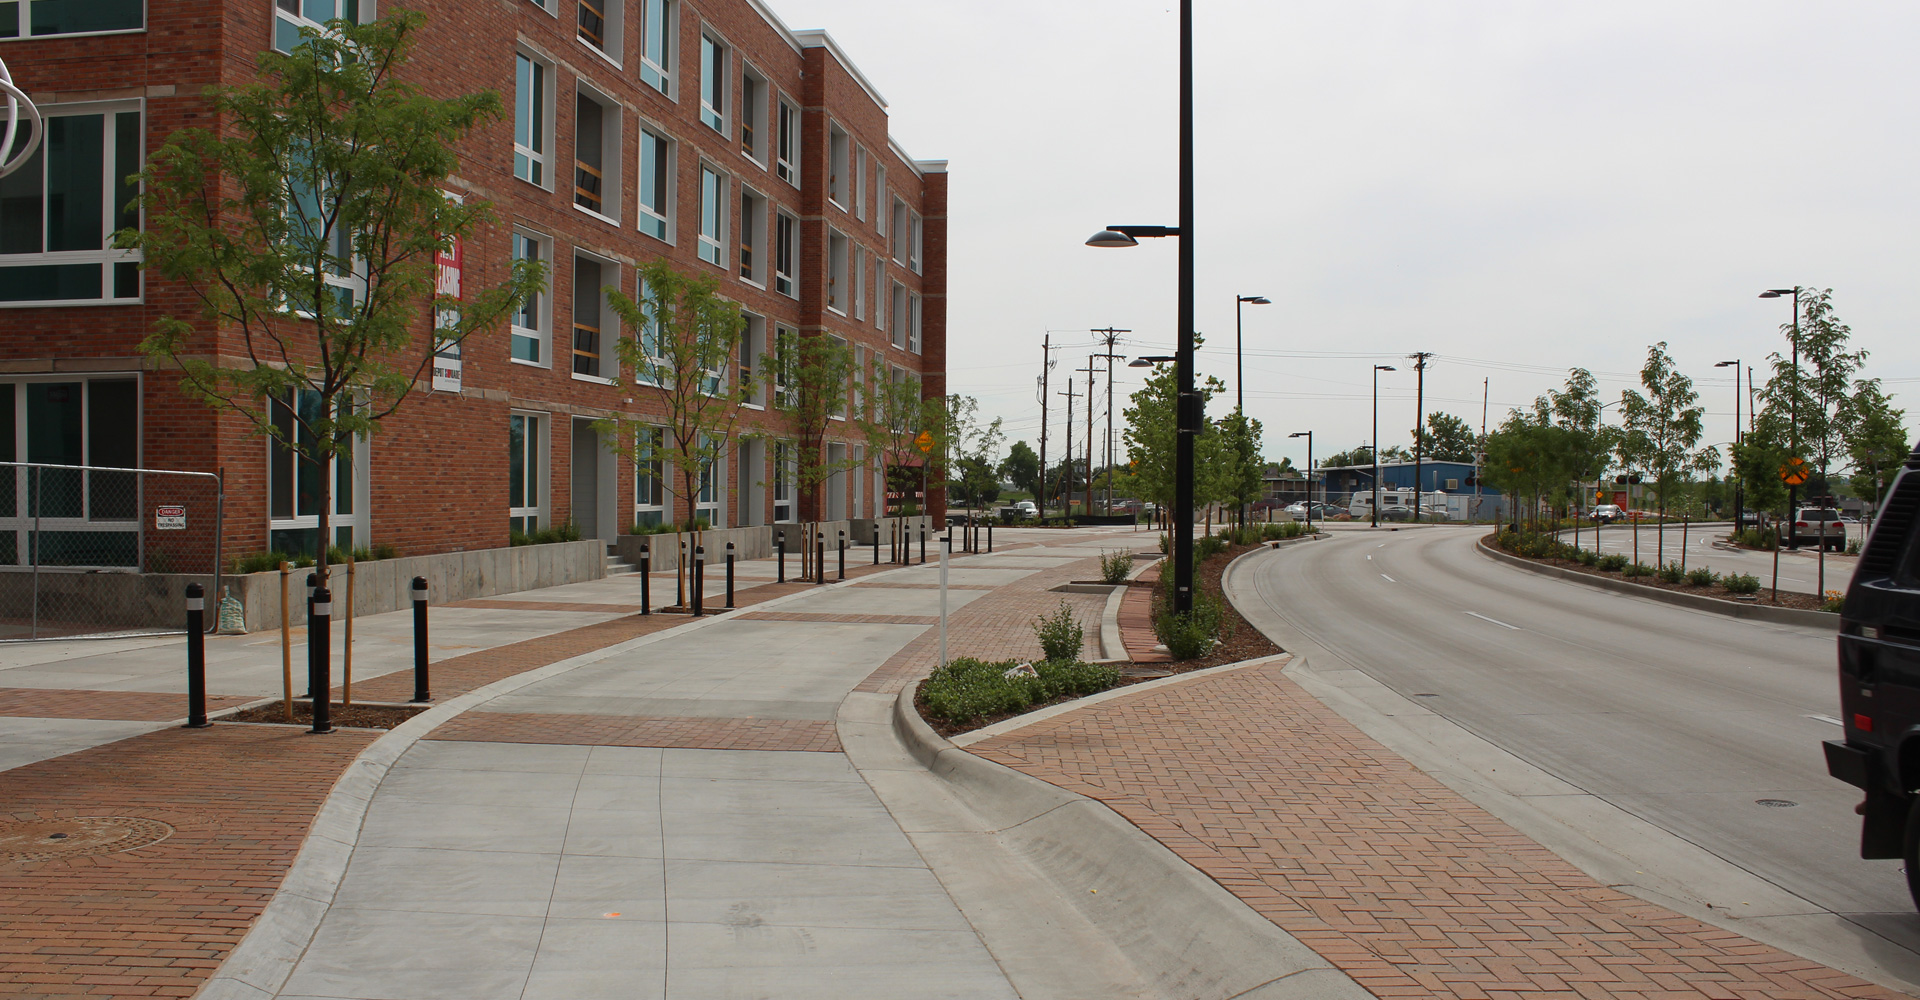 Pearl-Pkwy Image.